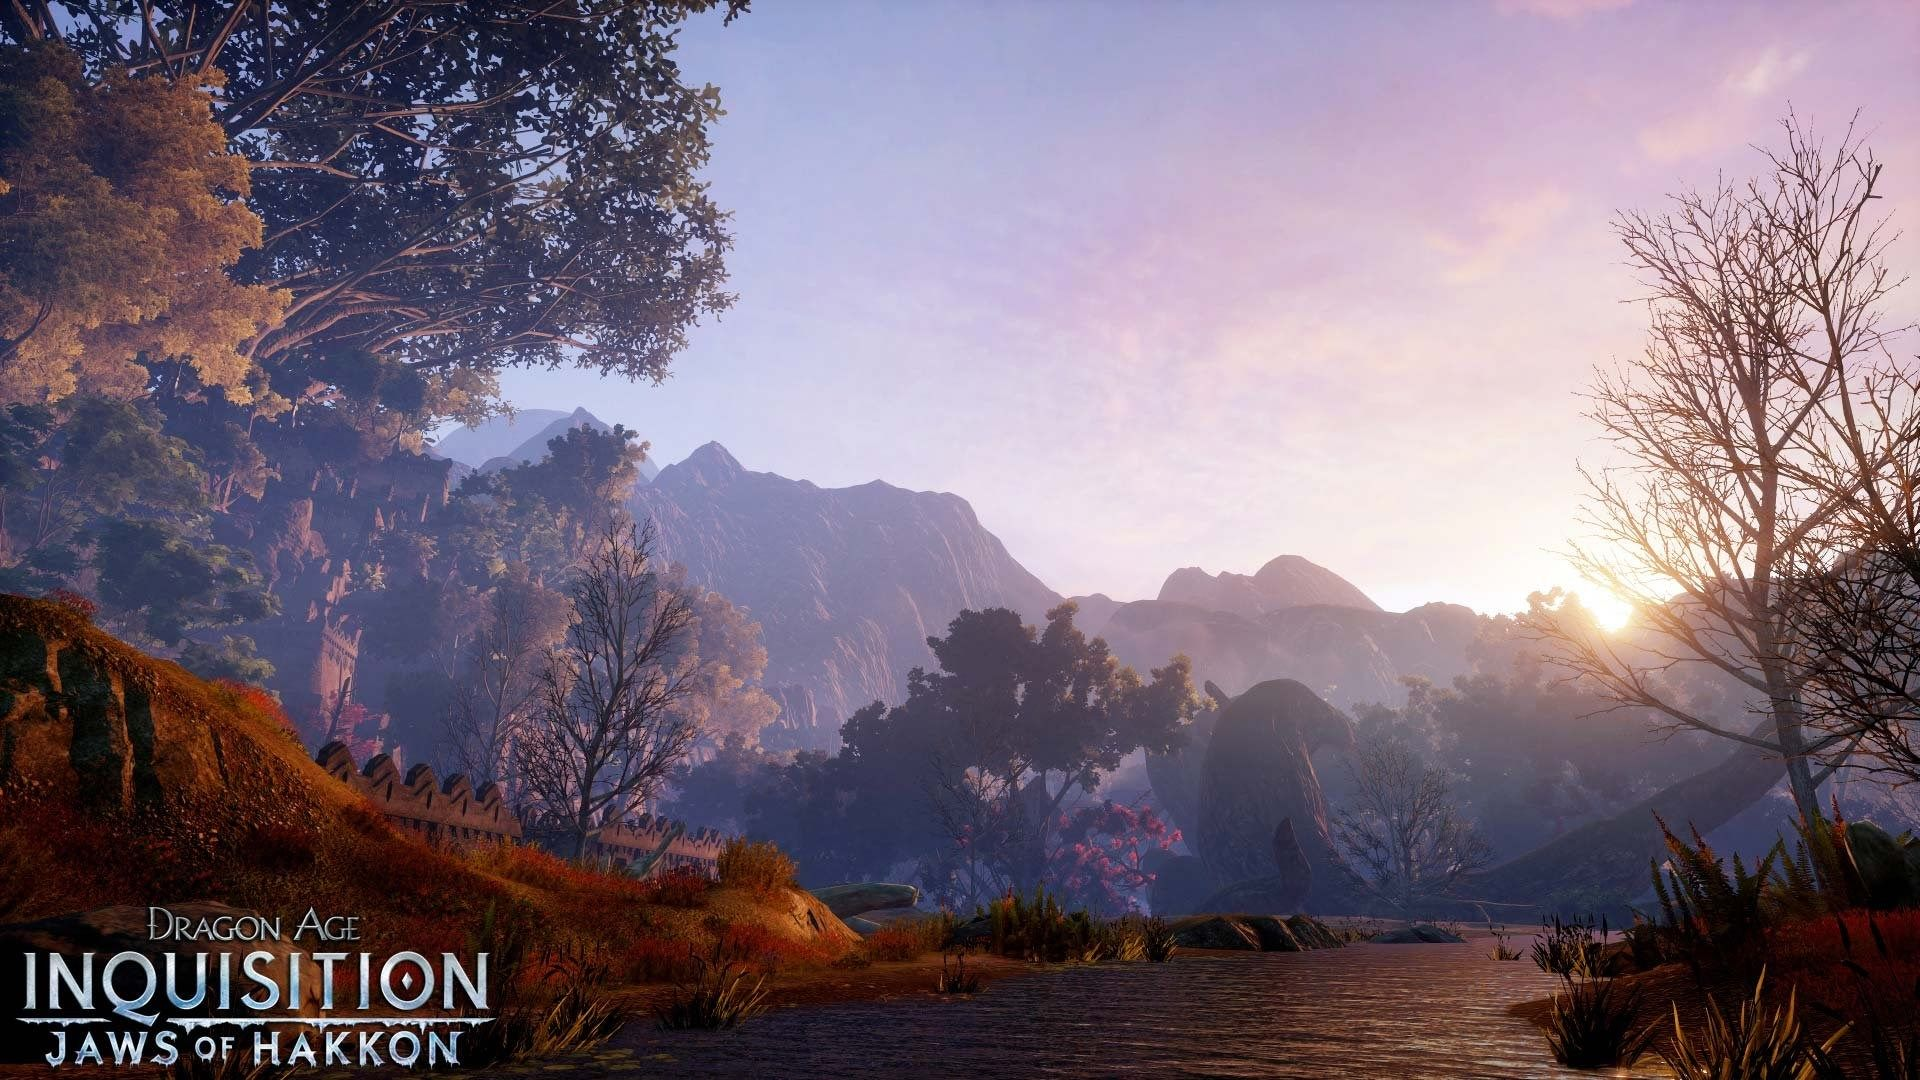 1527848 Wallpapers For Desktop Dragon Age Inquisition Wallpaper